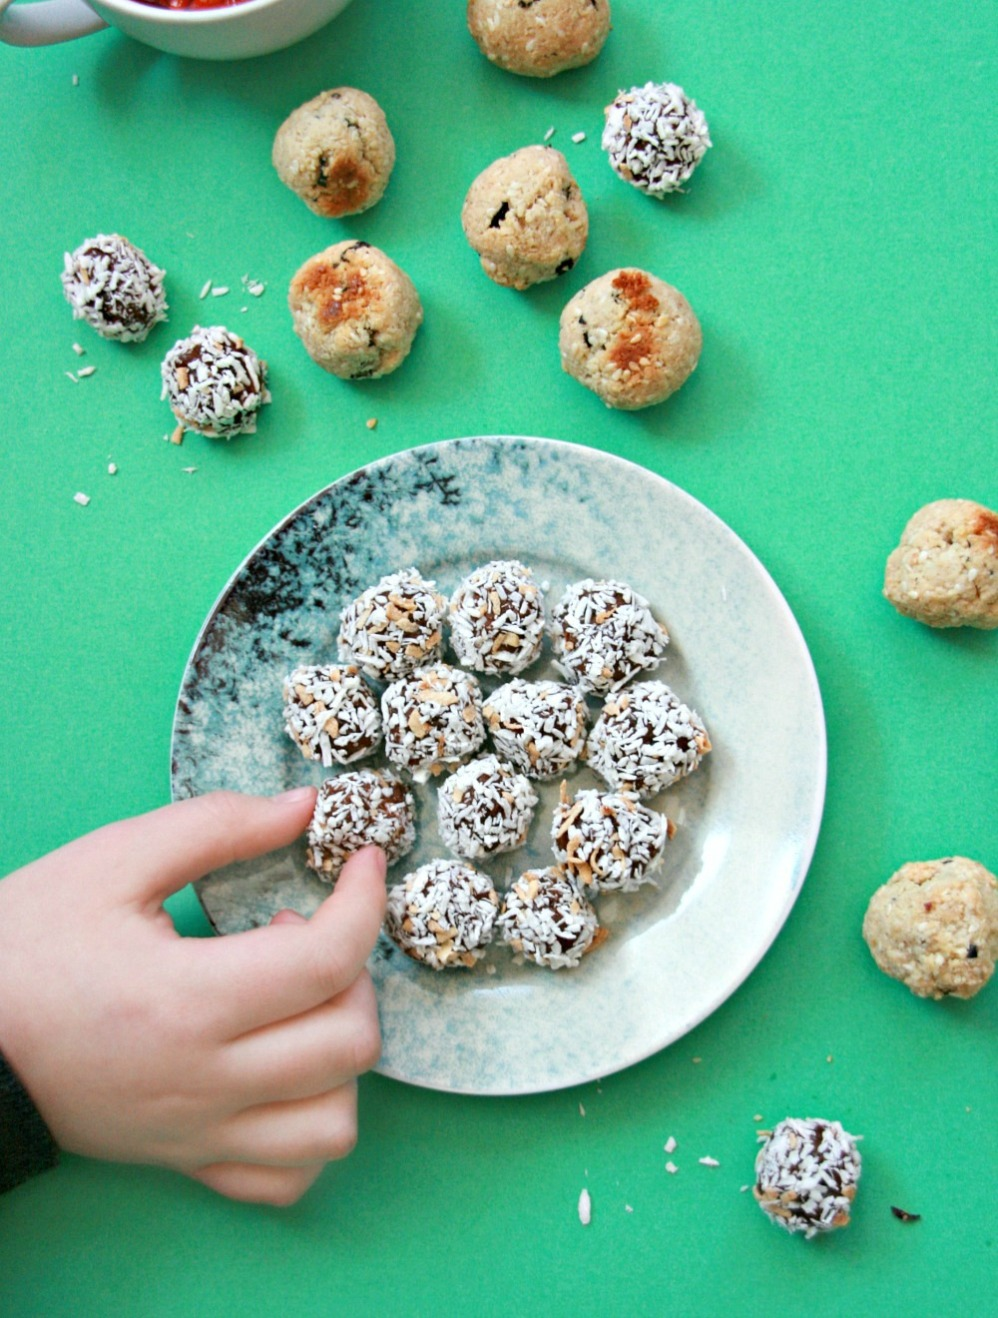 The Help Yourself Cookbook For Kids chocoballs and moon drops